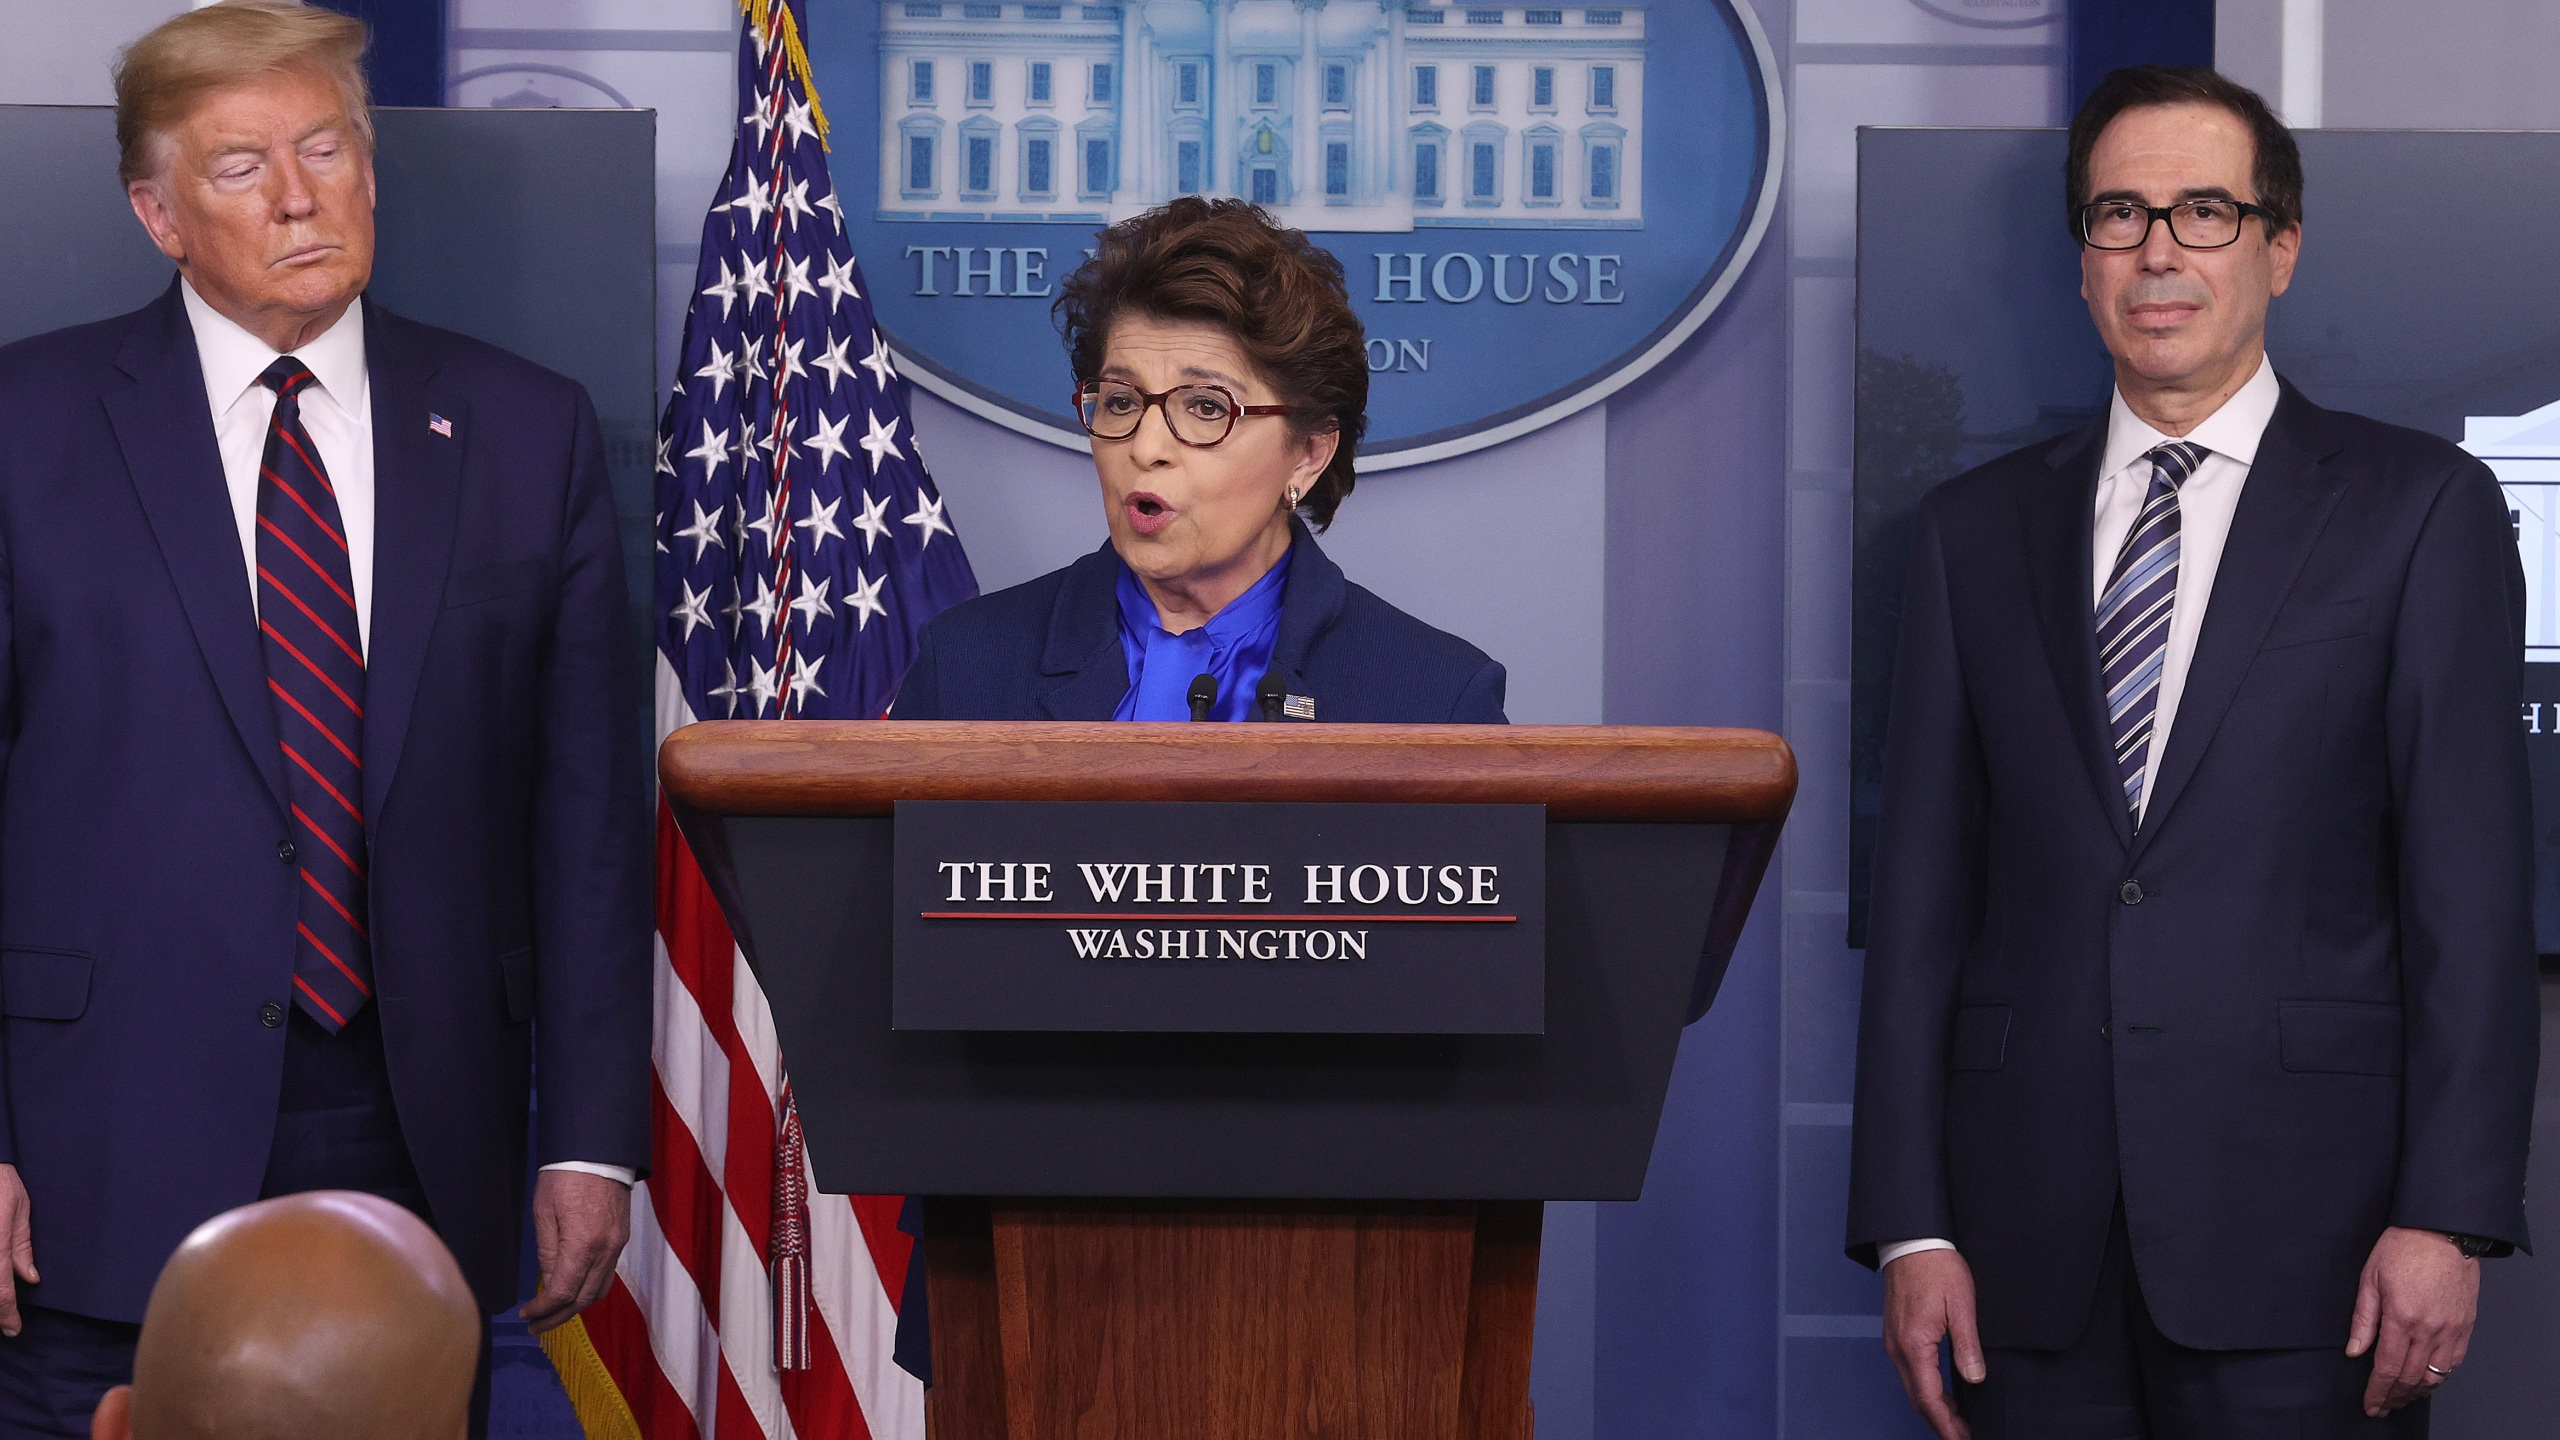 Small Business Administrator Jovita Carranza speaks while flanked by U.S. President Donald Trump and Secretary of Treasury Steve Mnuchin in the press briefing room with members of the White House Coronavirus Task Force on April 2, 2020 in Washington, D.C. (Win McNamee/Getty Images)